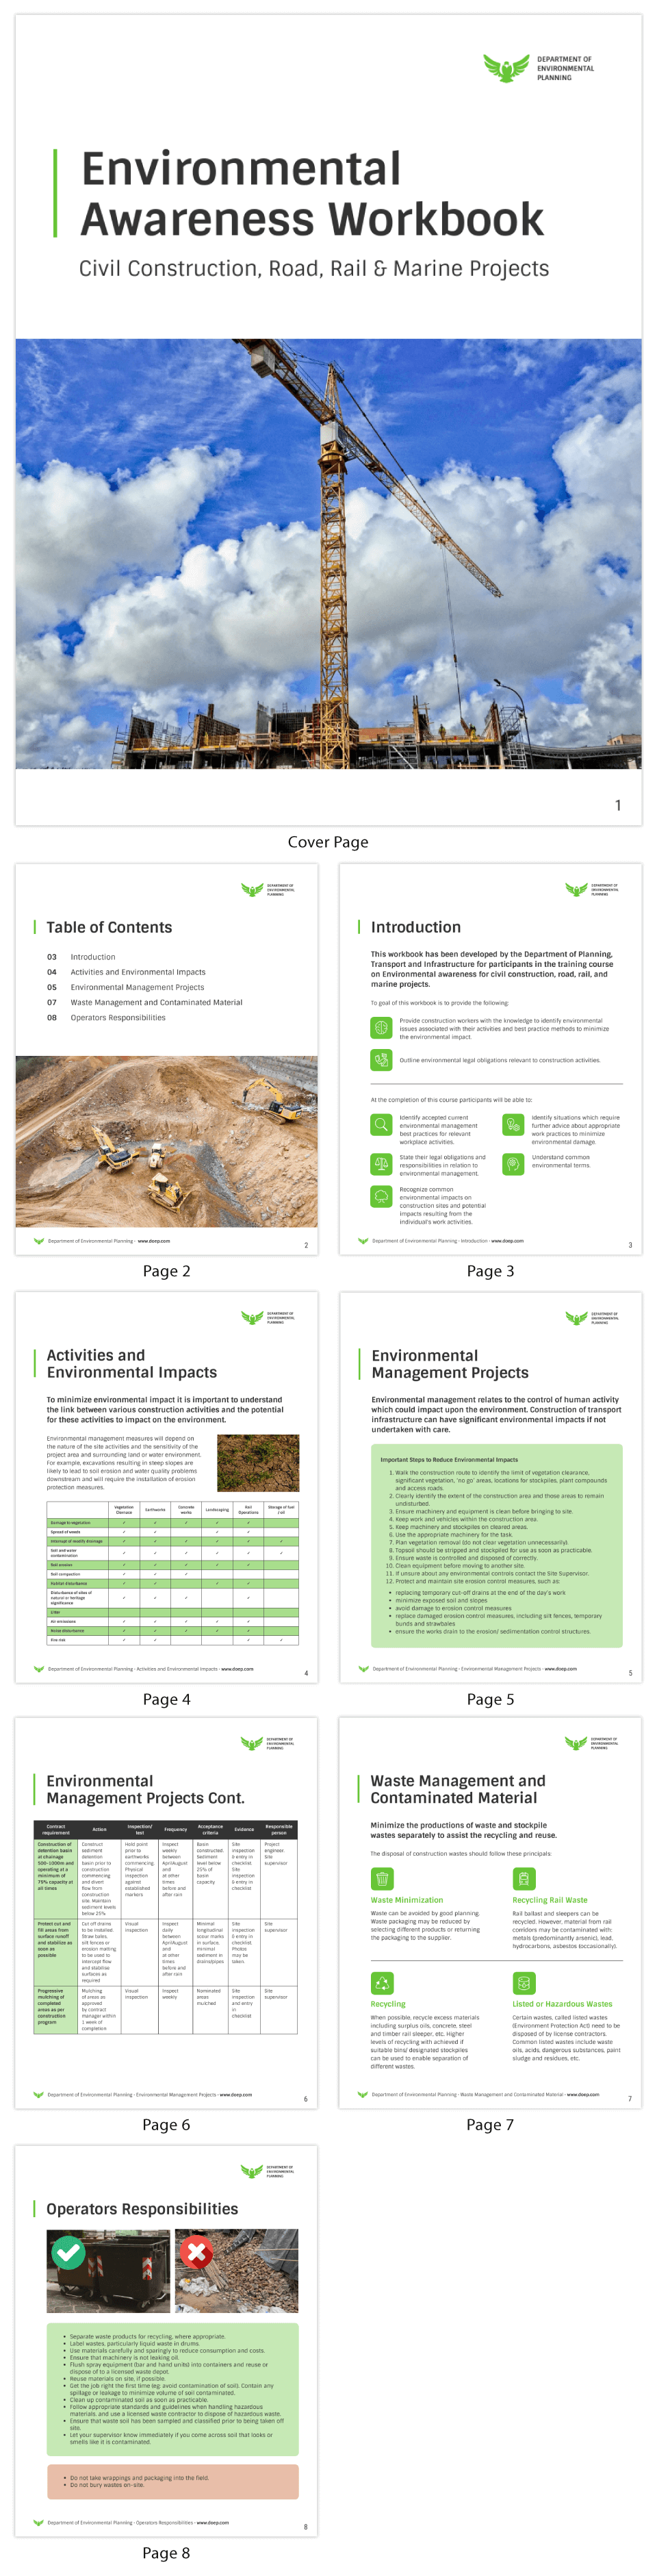 Environmental Awareness Workbook Course White Paper Template